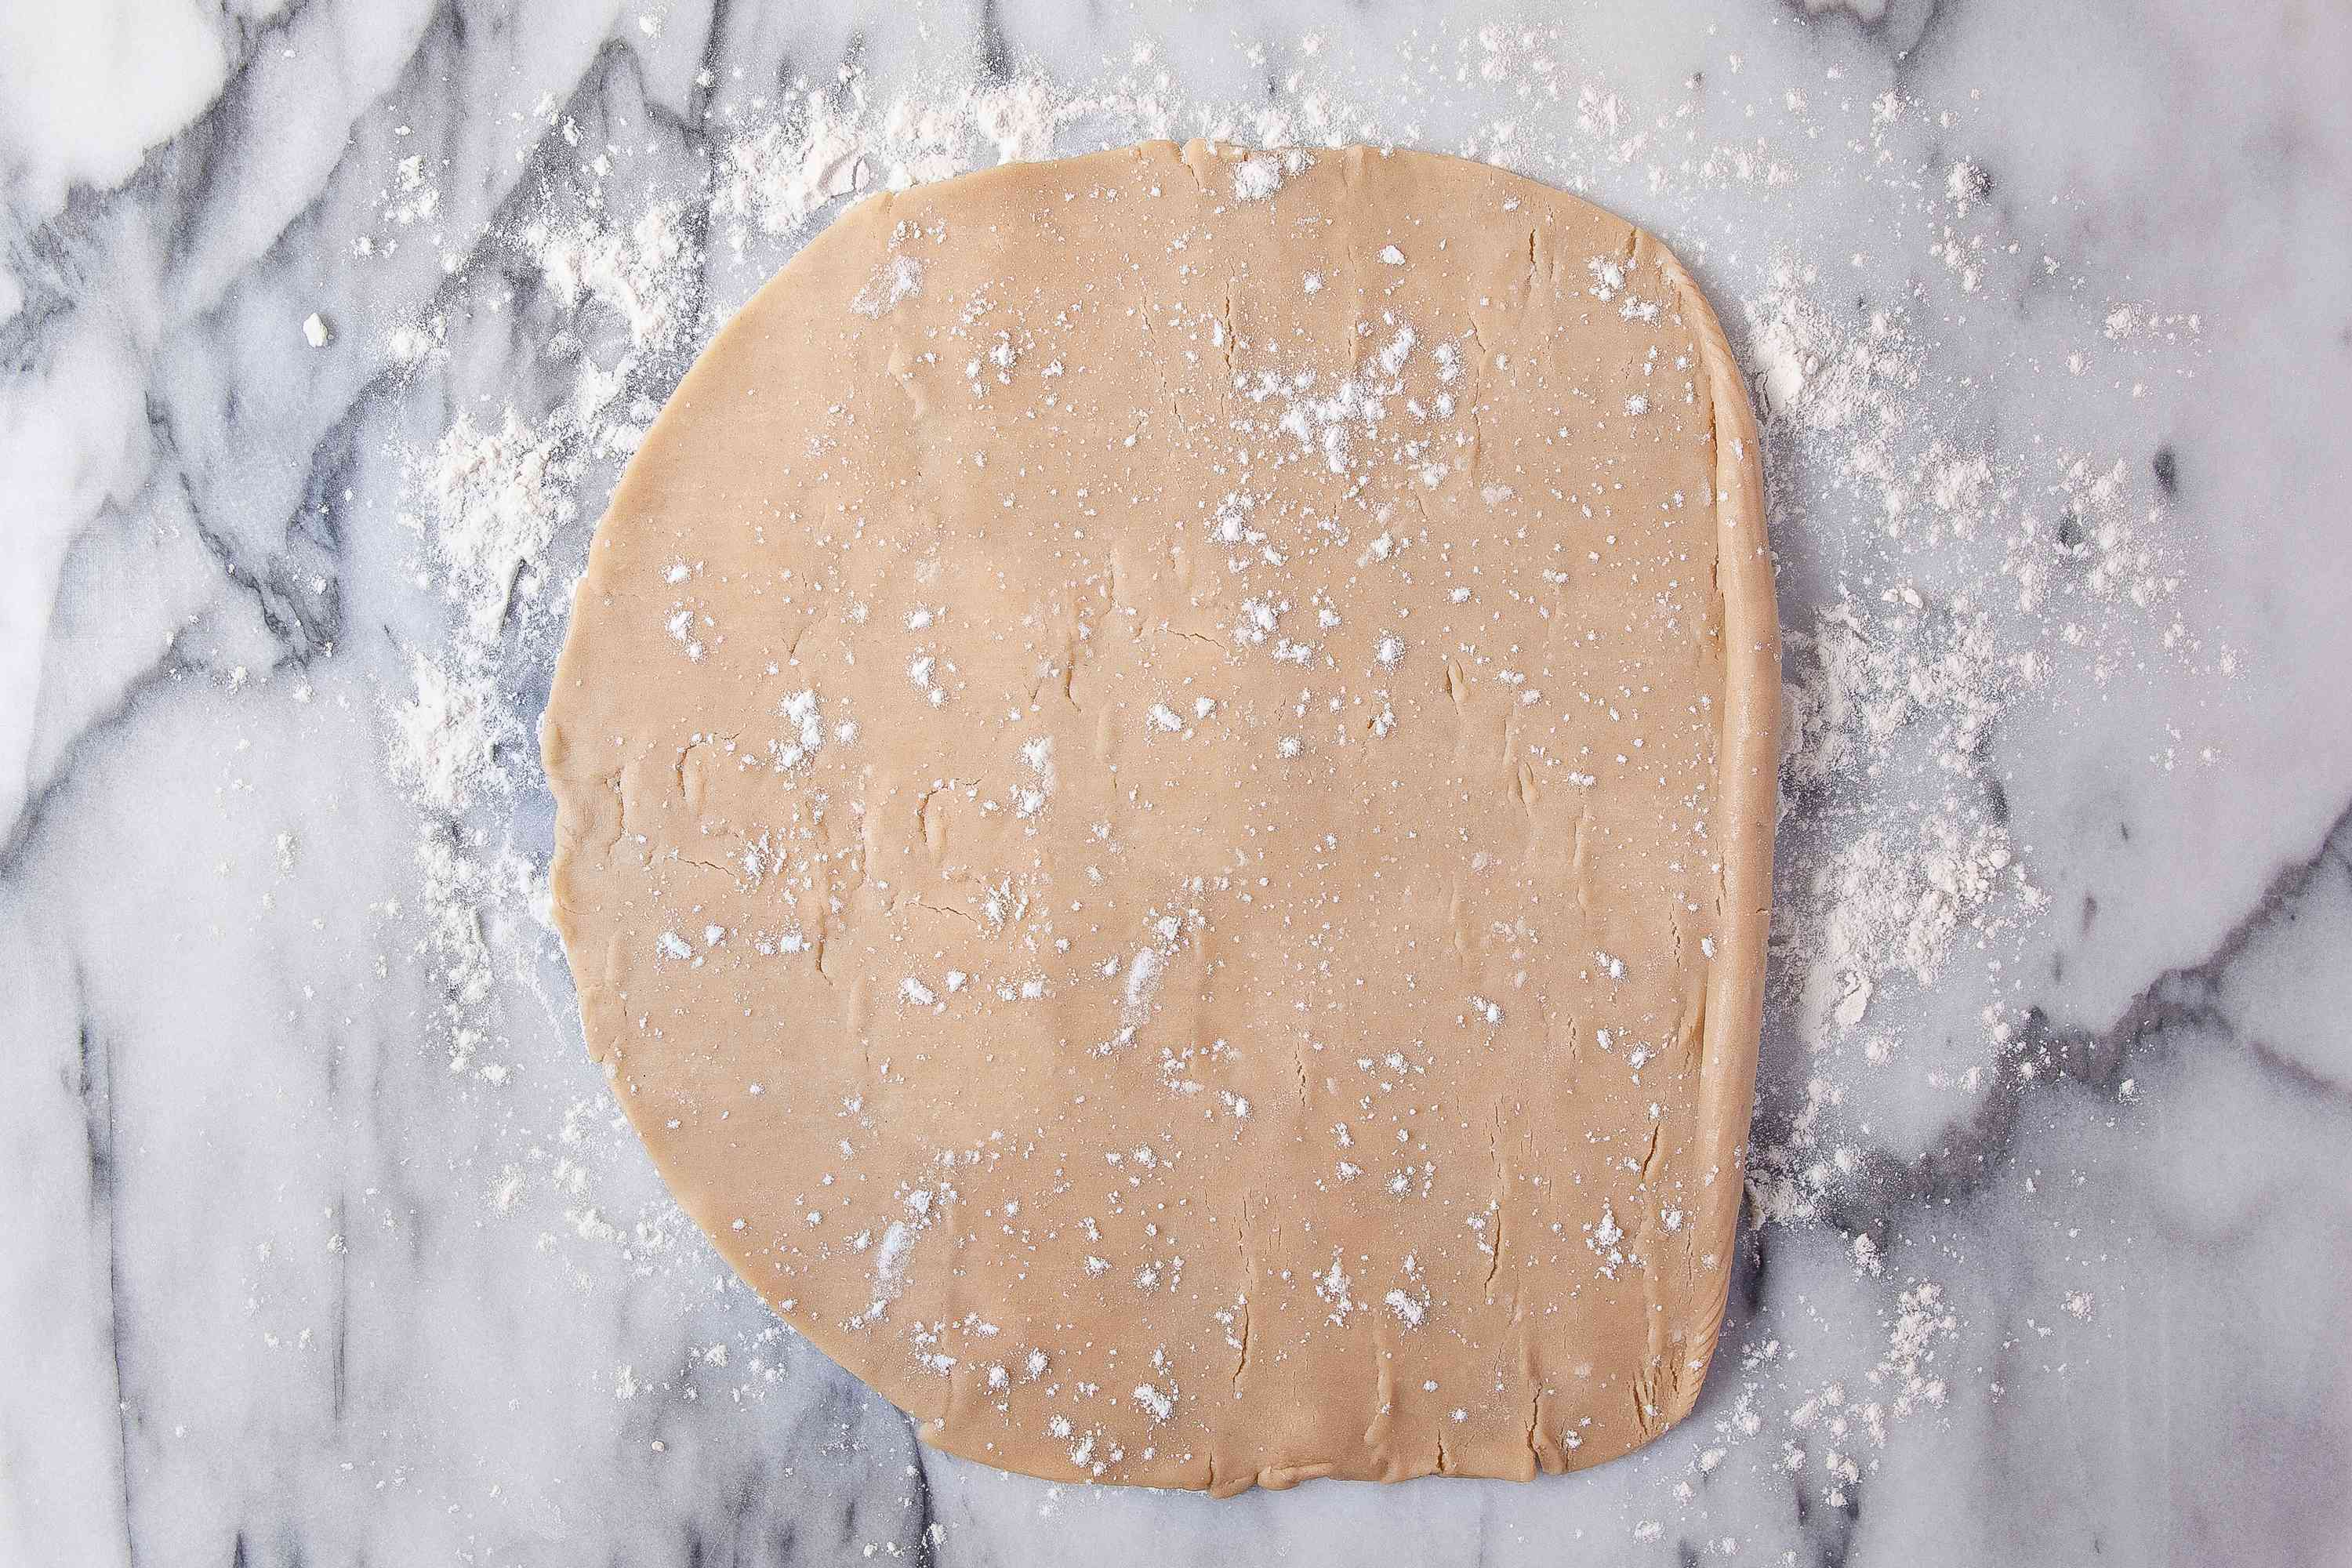 Pie crust with flour on a marble surface